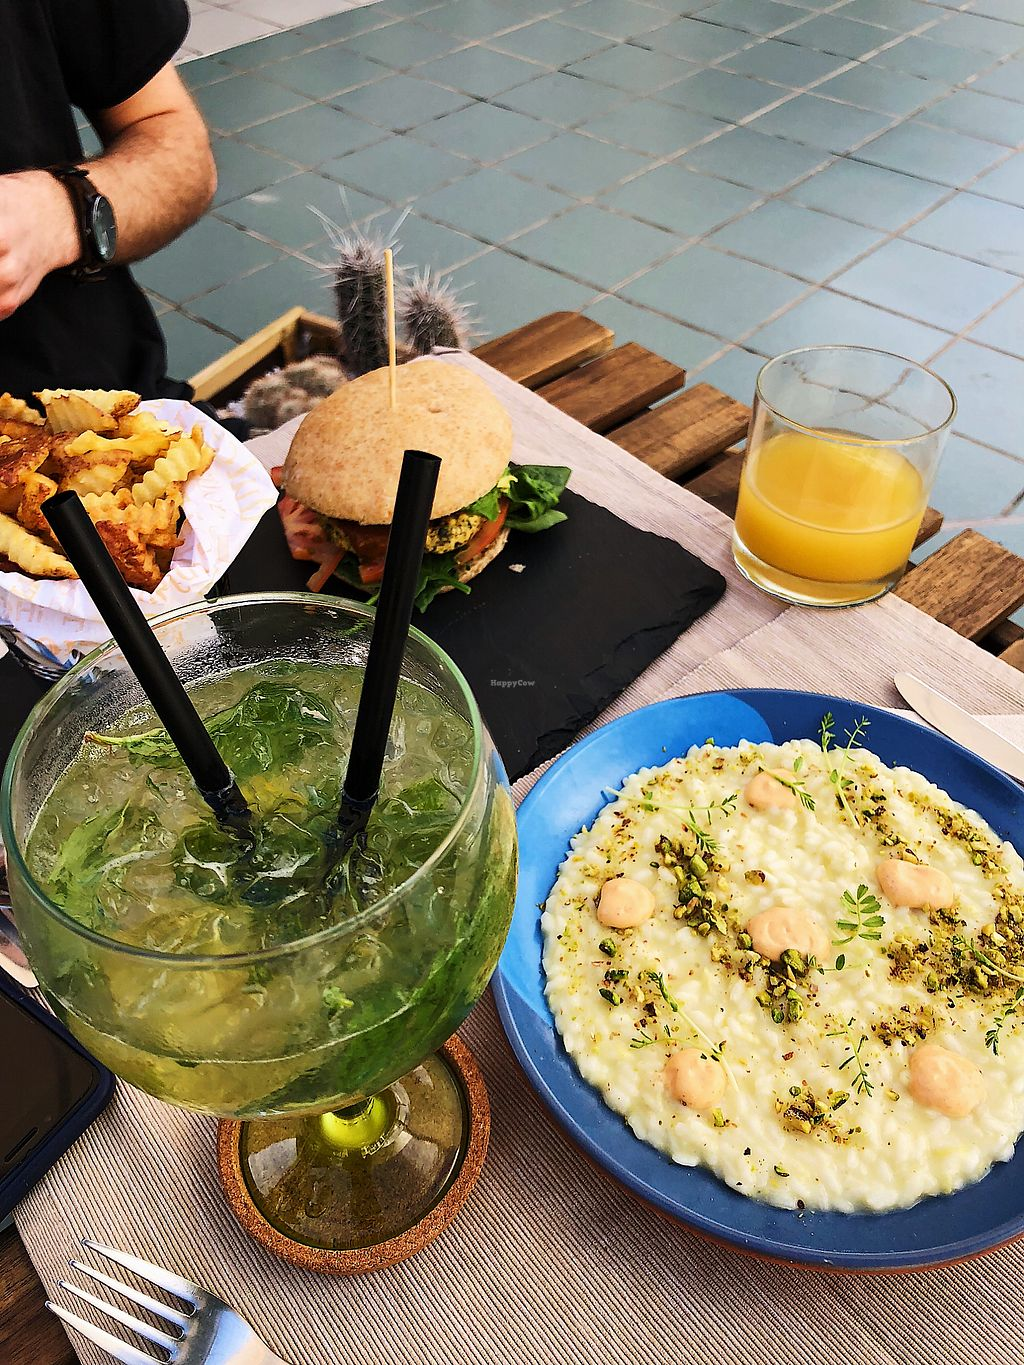 "Photo of Buenavida Vegan  by <a href=""/members/profile/SimonaCollins"">SimonaCollins</a> <br/>Risotto and burger  <br/> January 17, 2018  - <a href='/contact/abuse/image/64893/347770'>Report</a>"